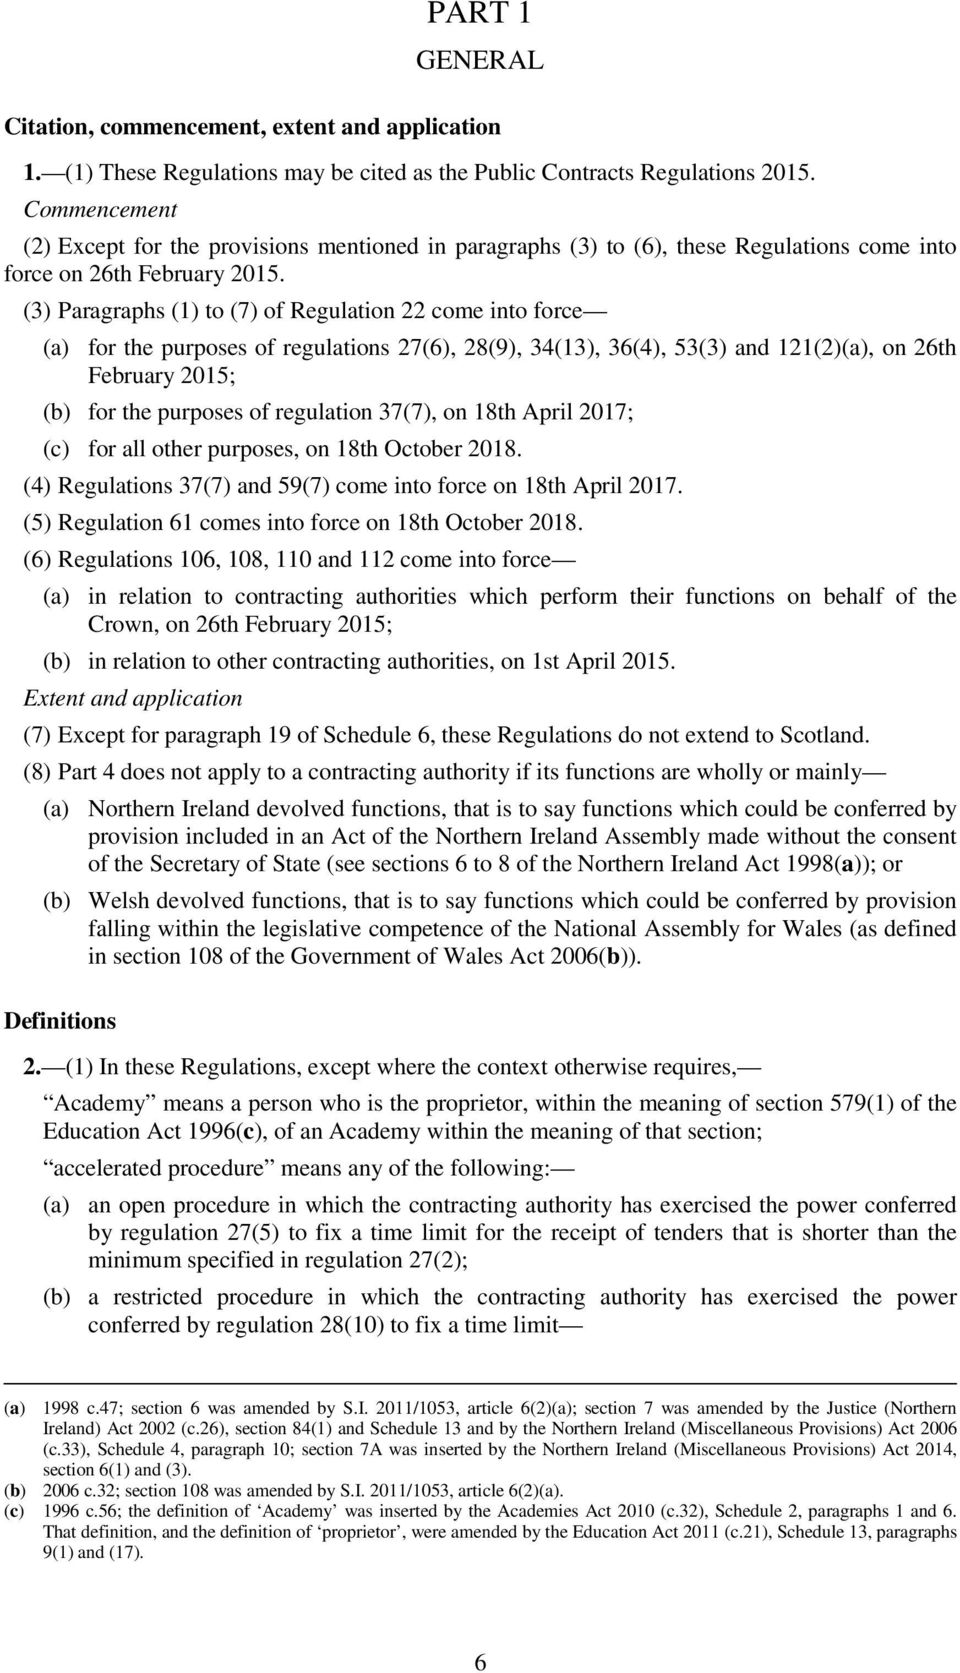 (3) Paragraphs (1) to (7) of Regulation 22 come into force (a) for the purposes of regulations 27(6), 28(9), 34(13), 36(4), 53(3) and 121(2)(a), on 26th February 2015; (b) for the purposes of